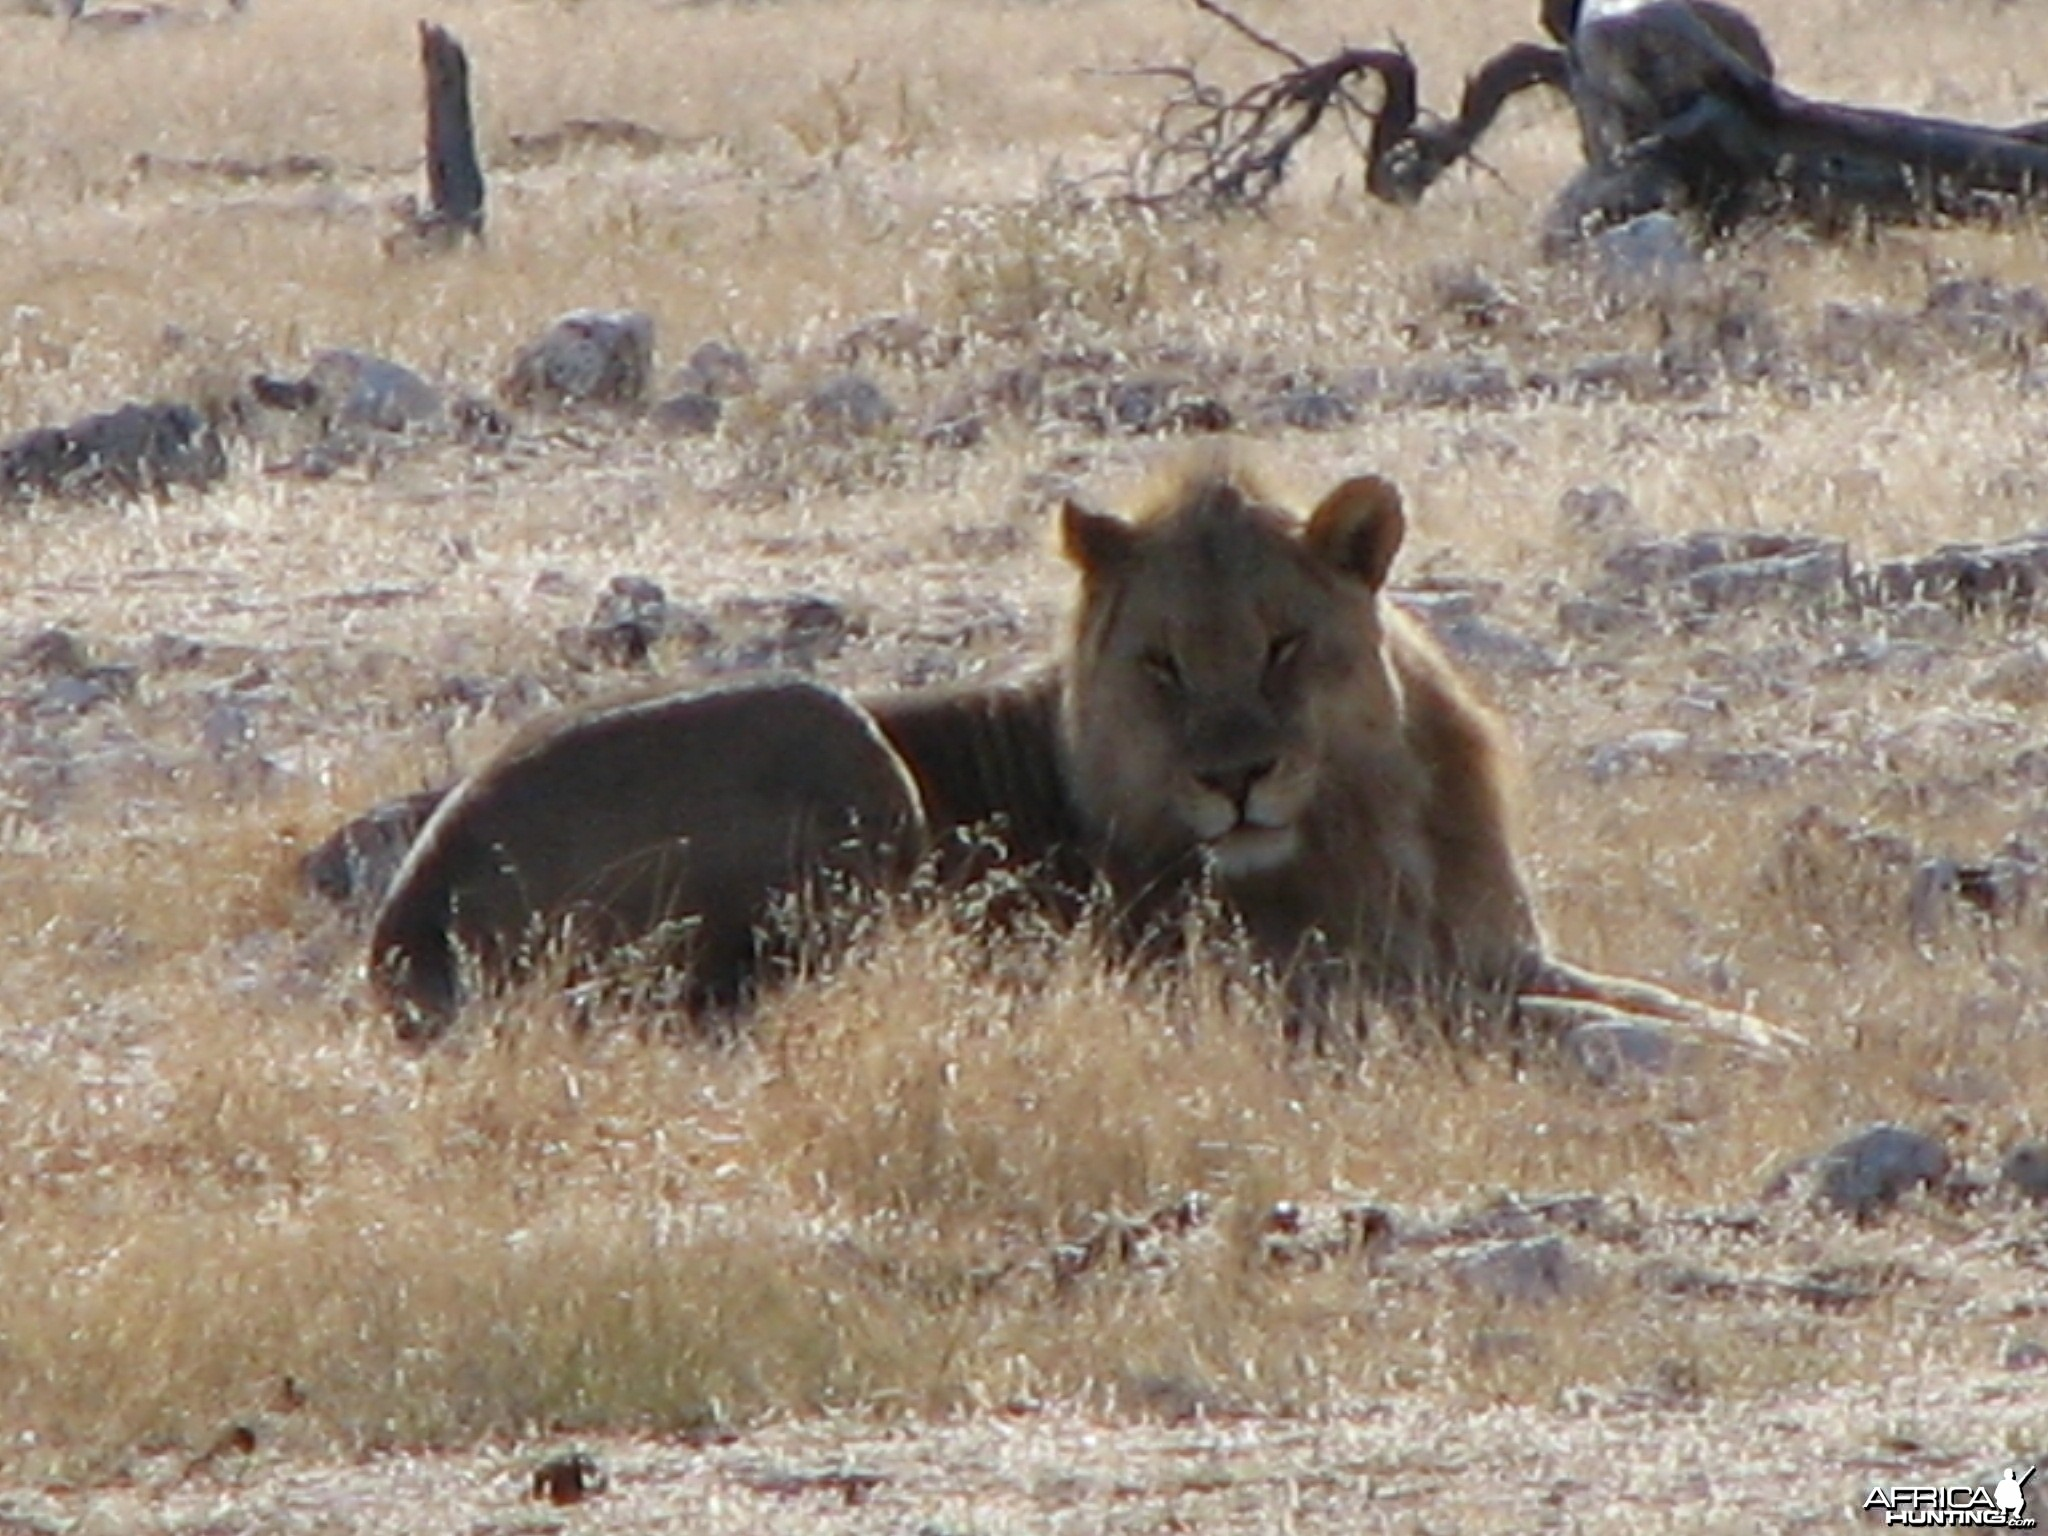 Lion at Etosha National Park, Namibia